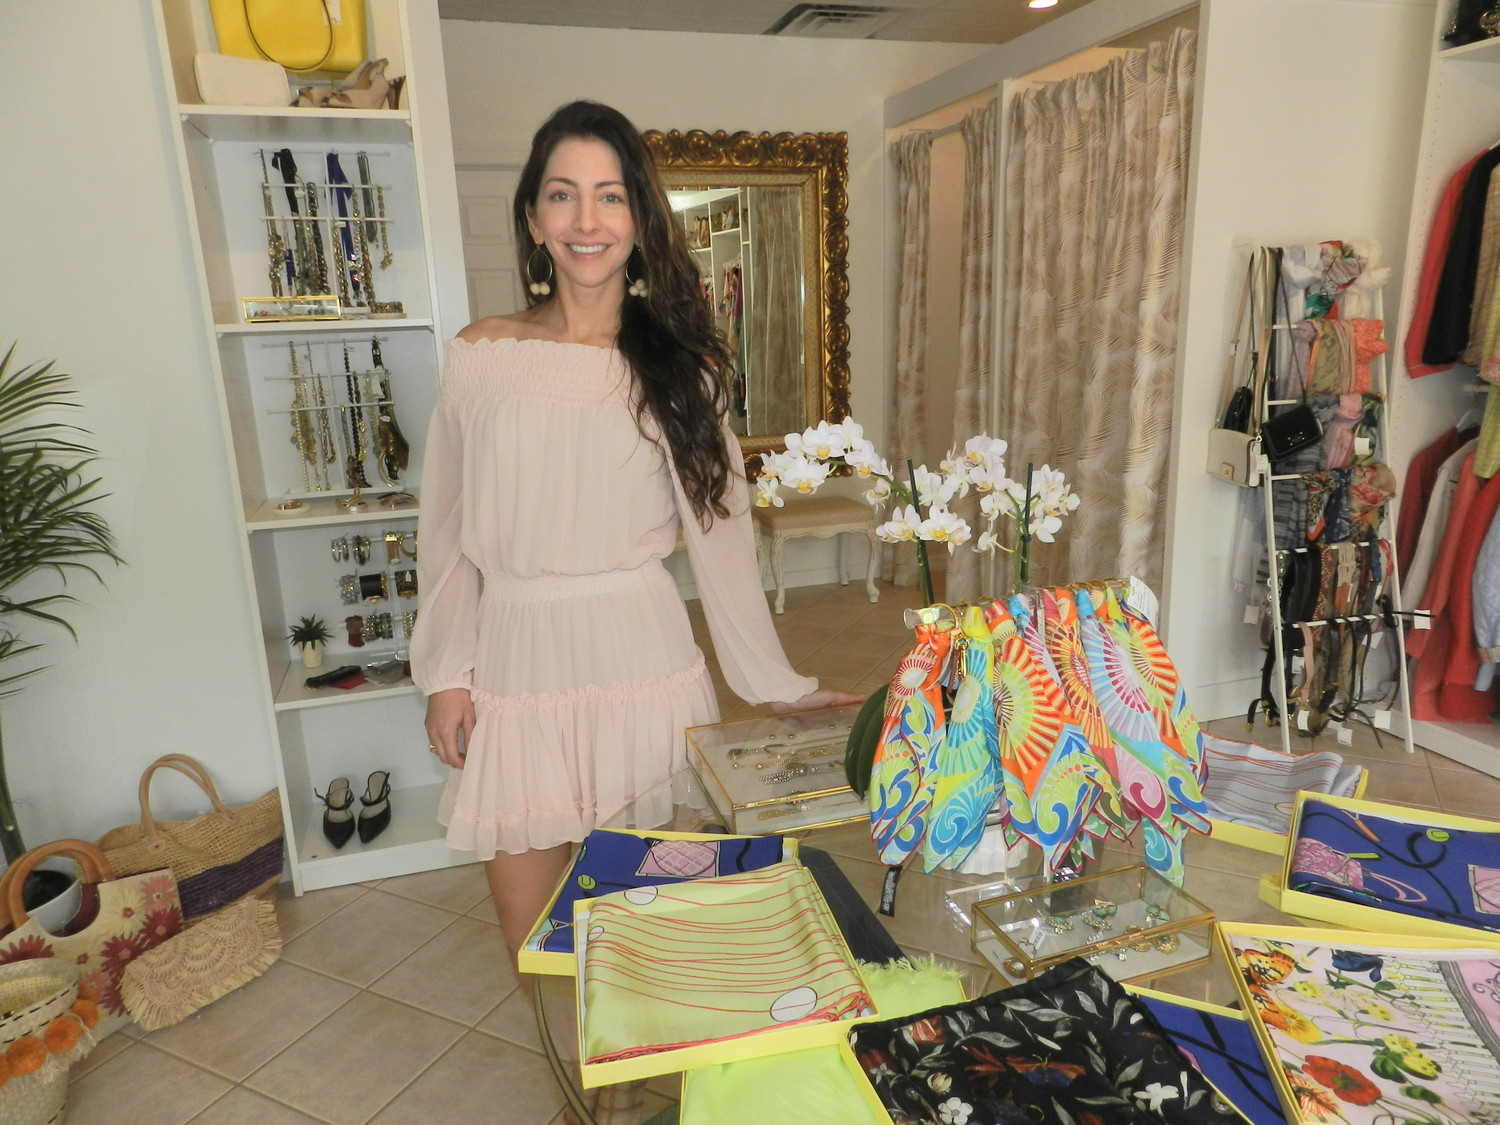 Lifelong Oyster Bay resident Gabrielle Fumai opened Sorelle after 10 years of working as a buyer in the high-end fashion industry.